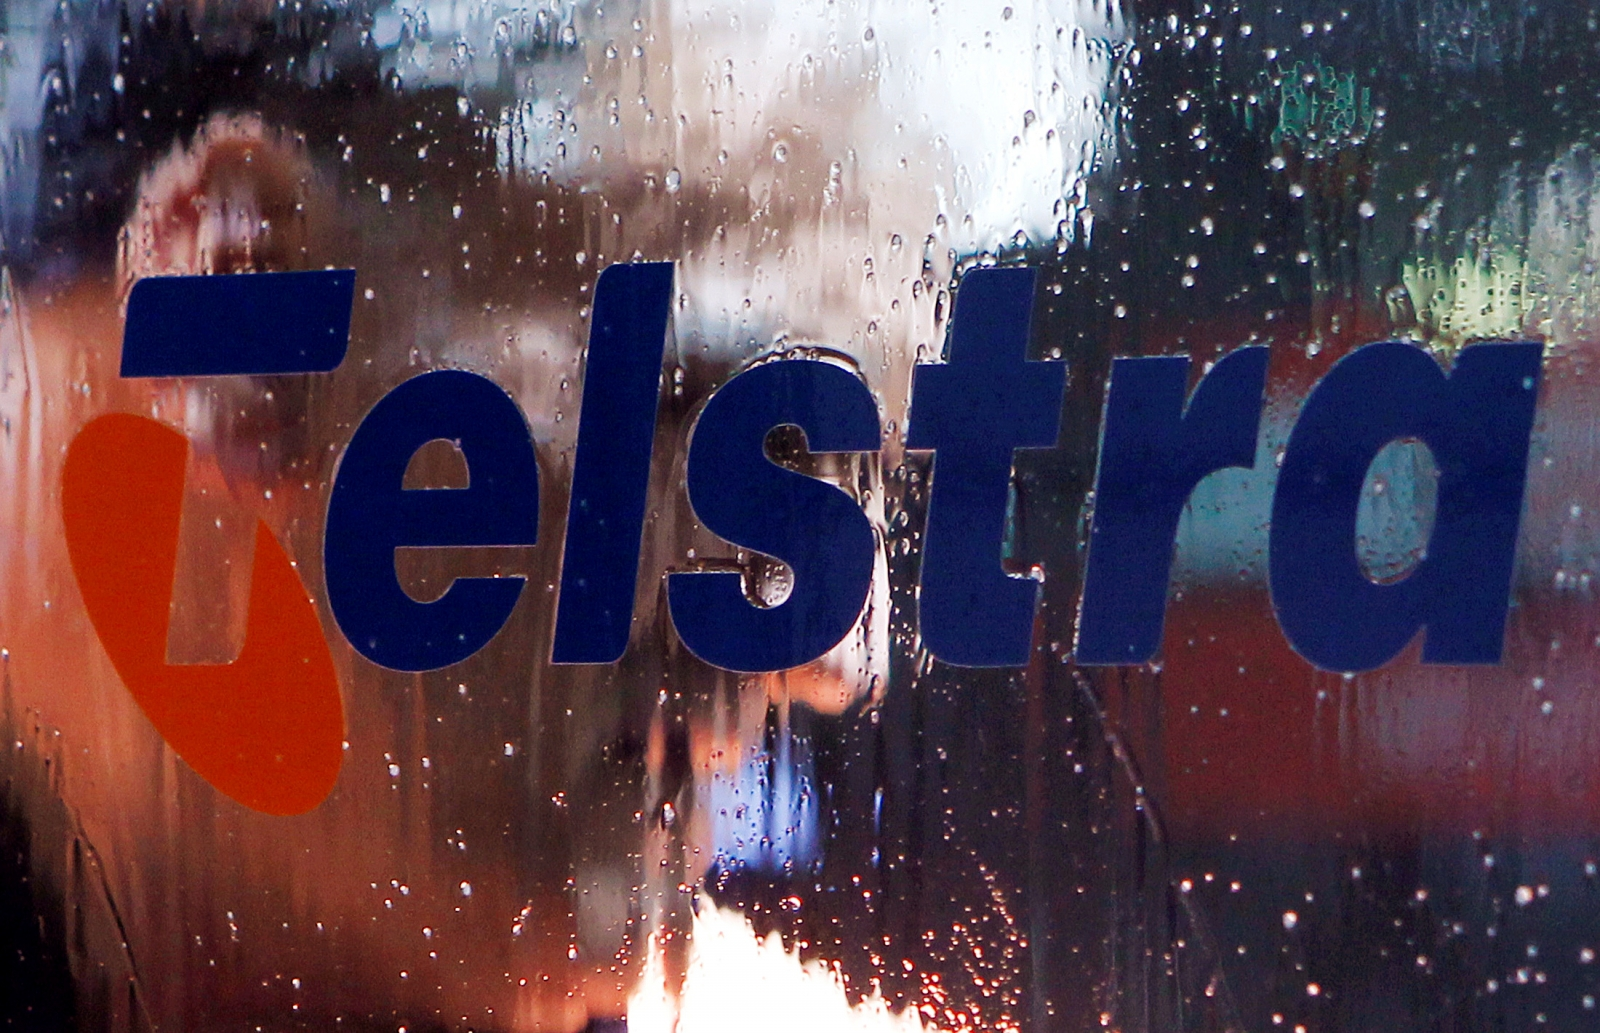 Telstra considering cutting over 200 jobs, most of which may be outsources